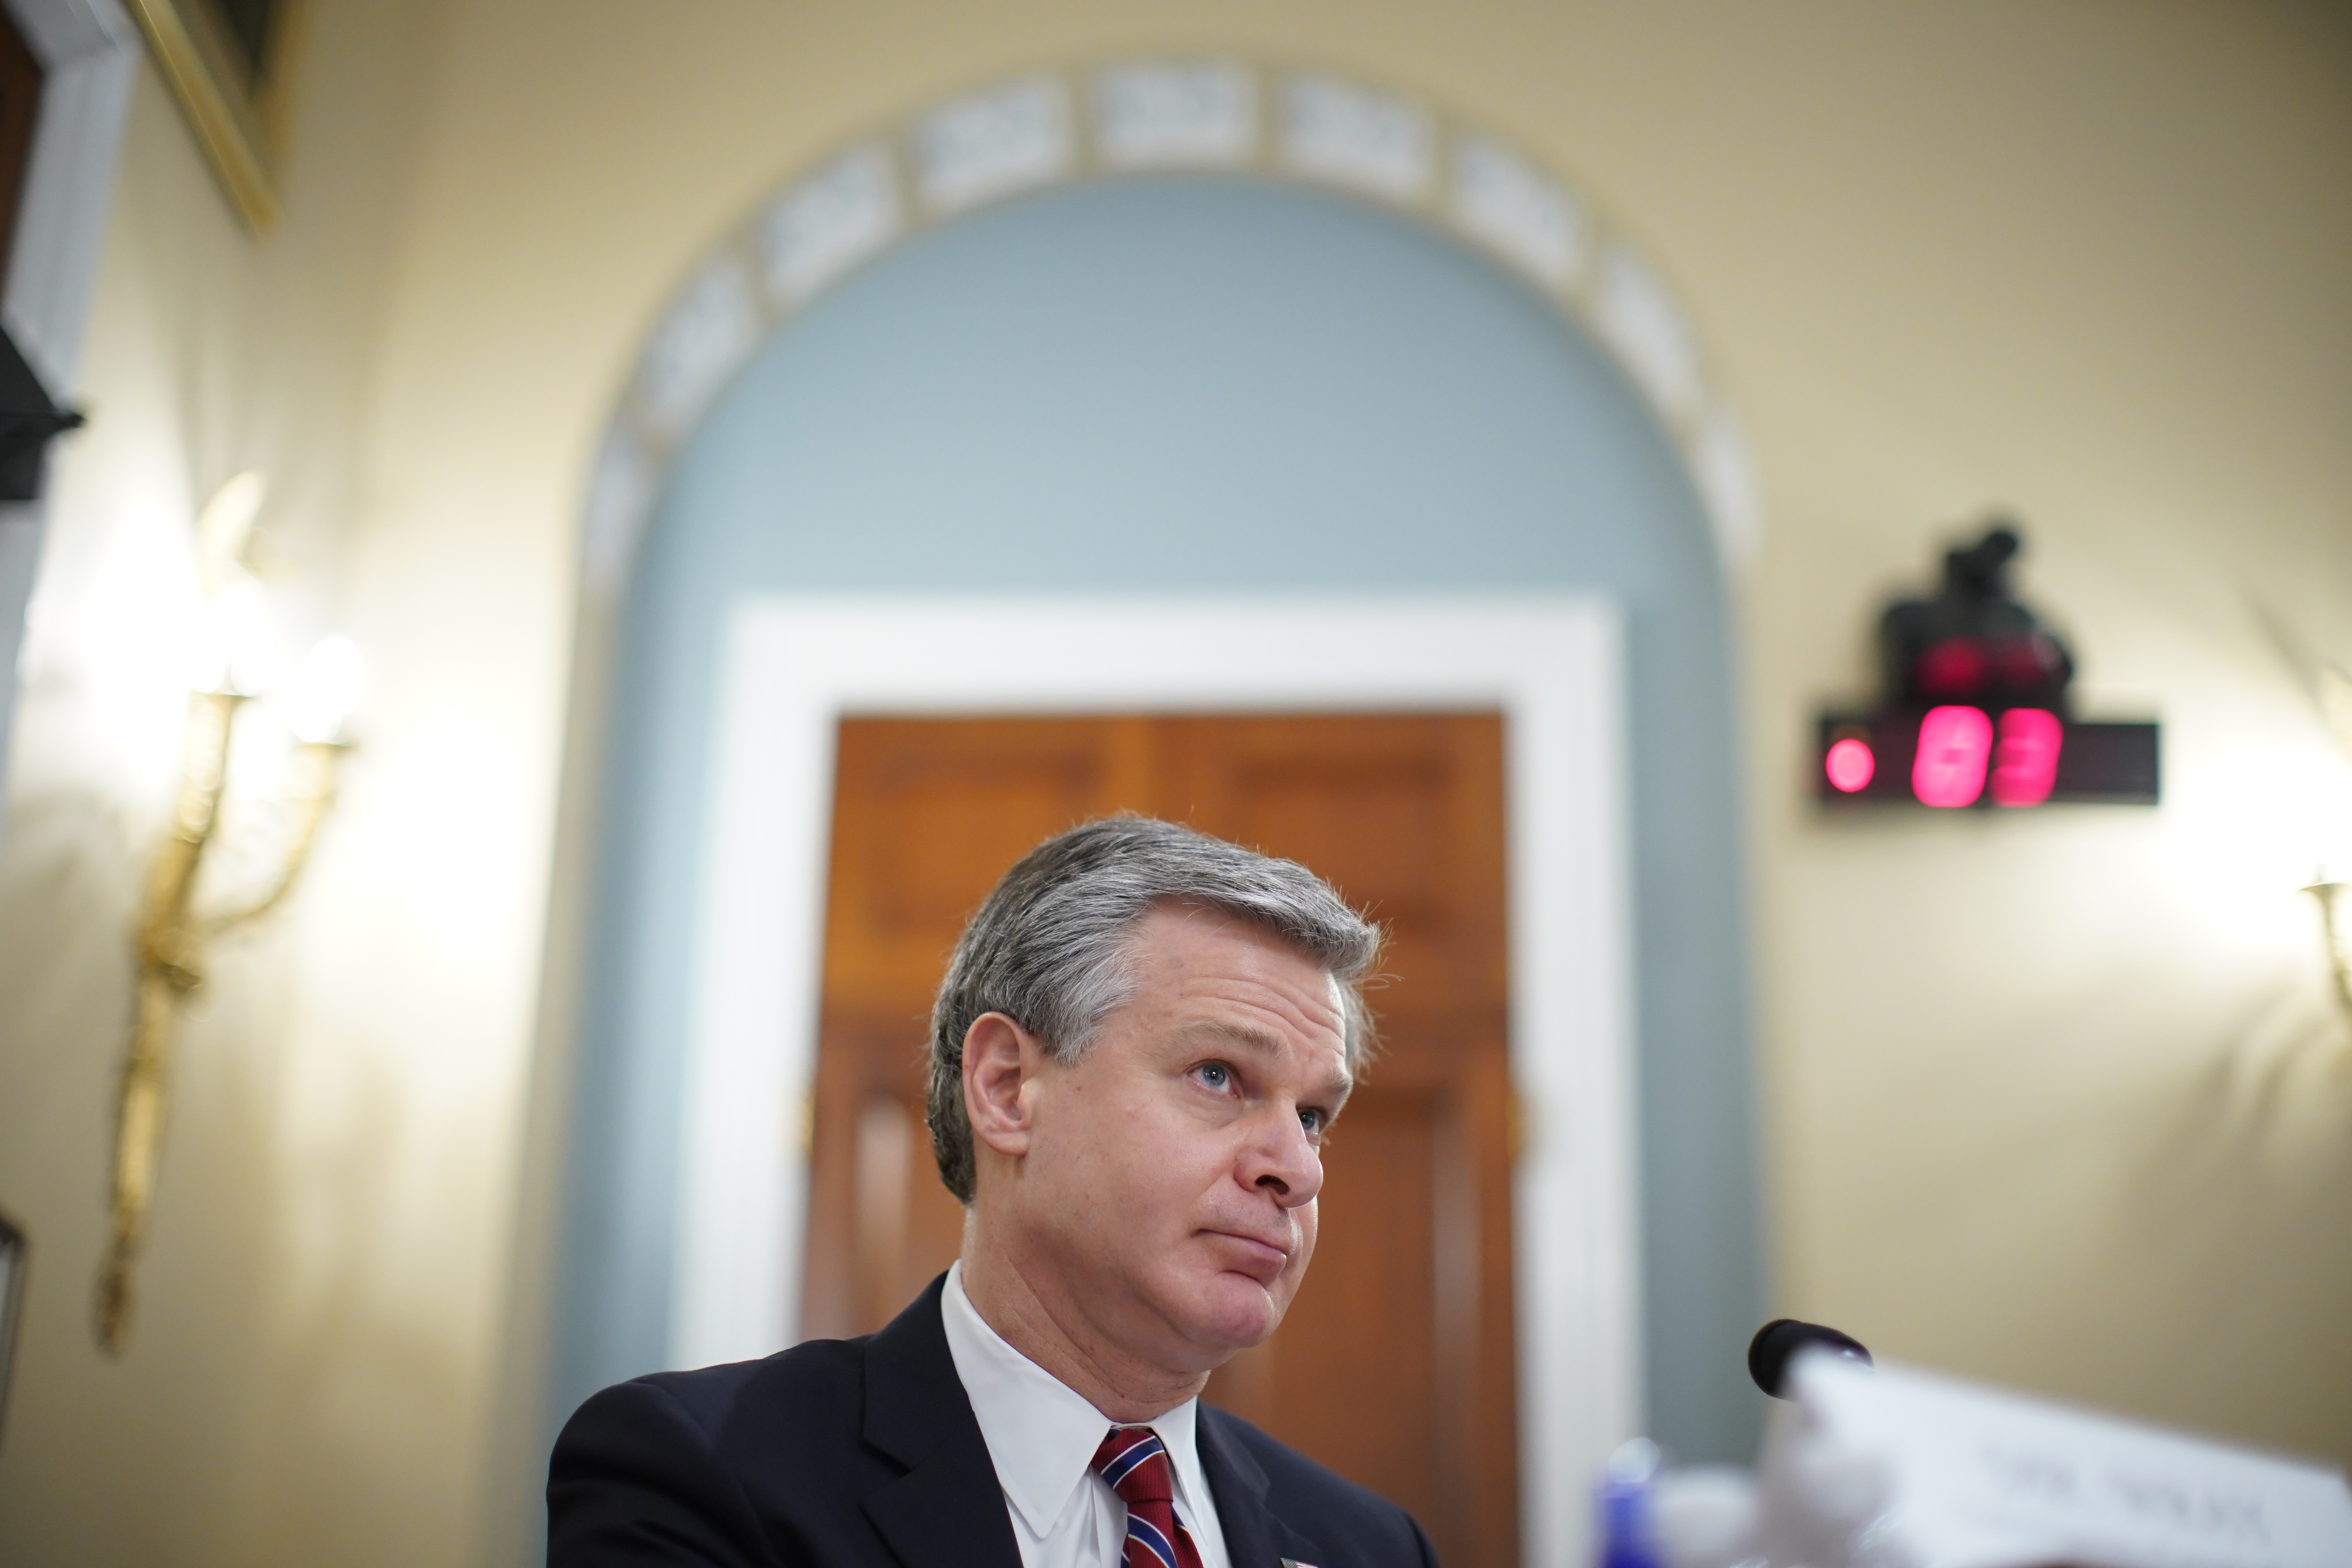 """Christopher Wray, director of the Federal Bureau of Investigation (FBI), pauses during a House Intelligence Committee hearing in Washington, D.C., U.S., on Thursday, April 15, 2021. The hearing follows the release of an unclassified report by the intelligence community detailing the U.S. and its allies will face """"a diverse array of threats"""" in the coming year, with aggression by Russia, China and Iran. Photographer: Al Drago/Bloomberg via Getty Images"""